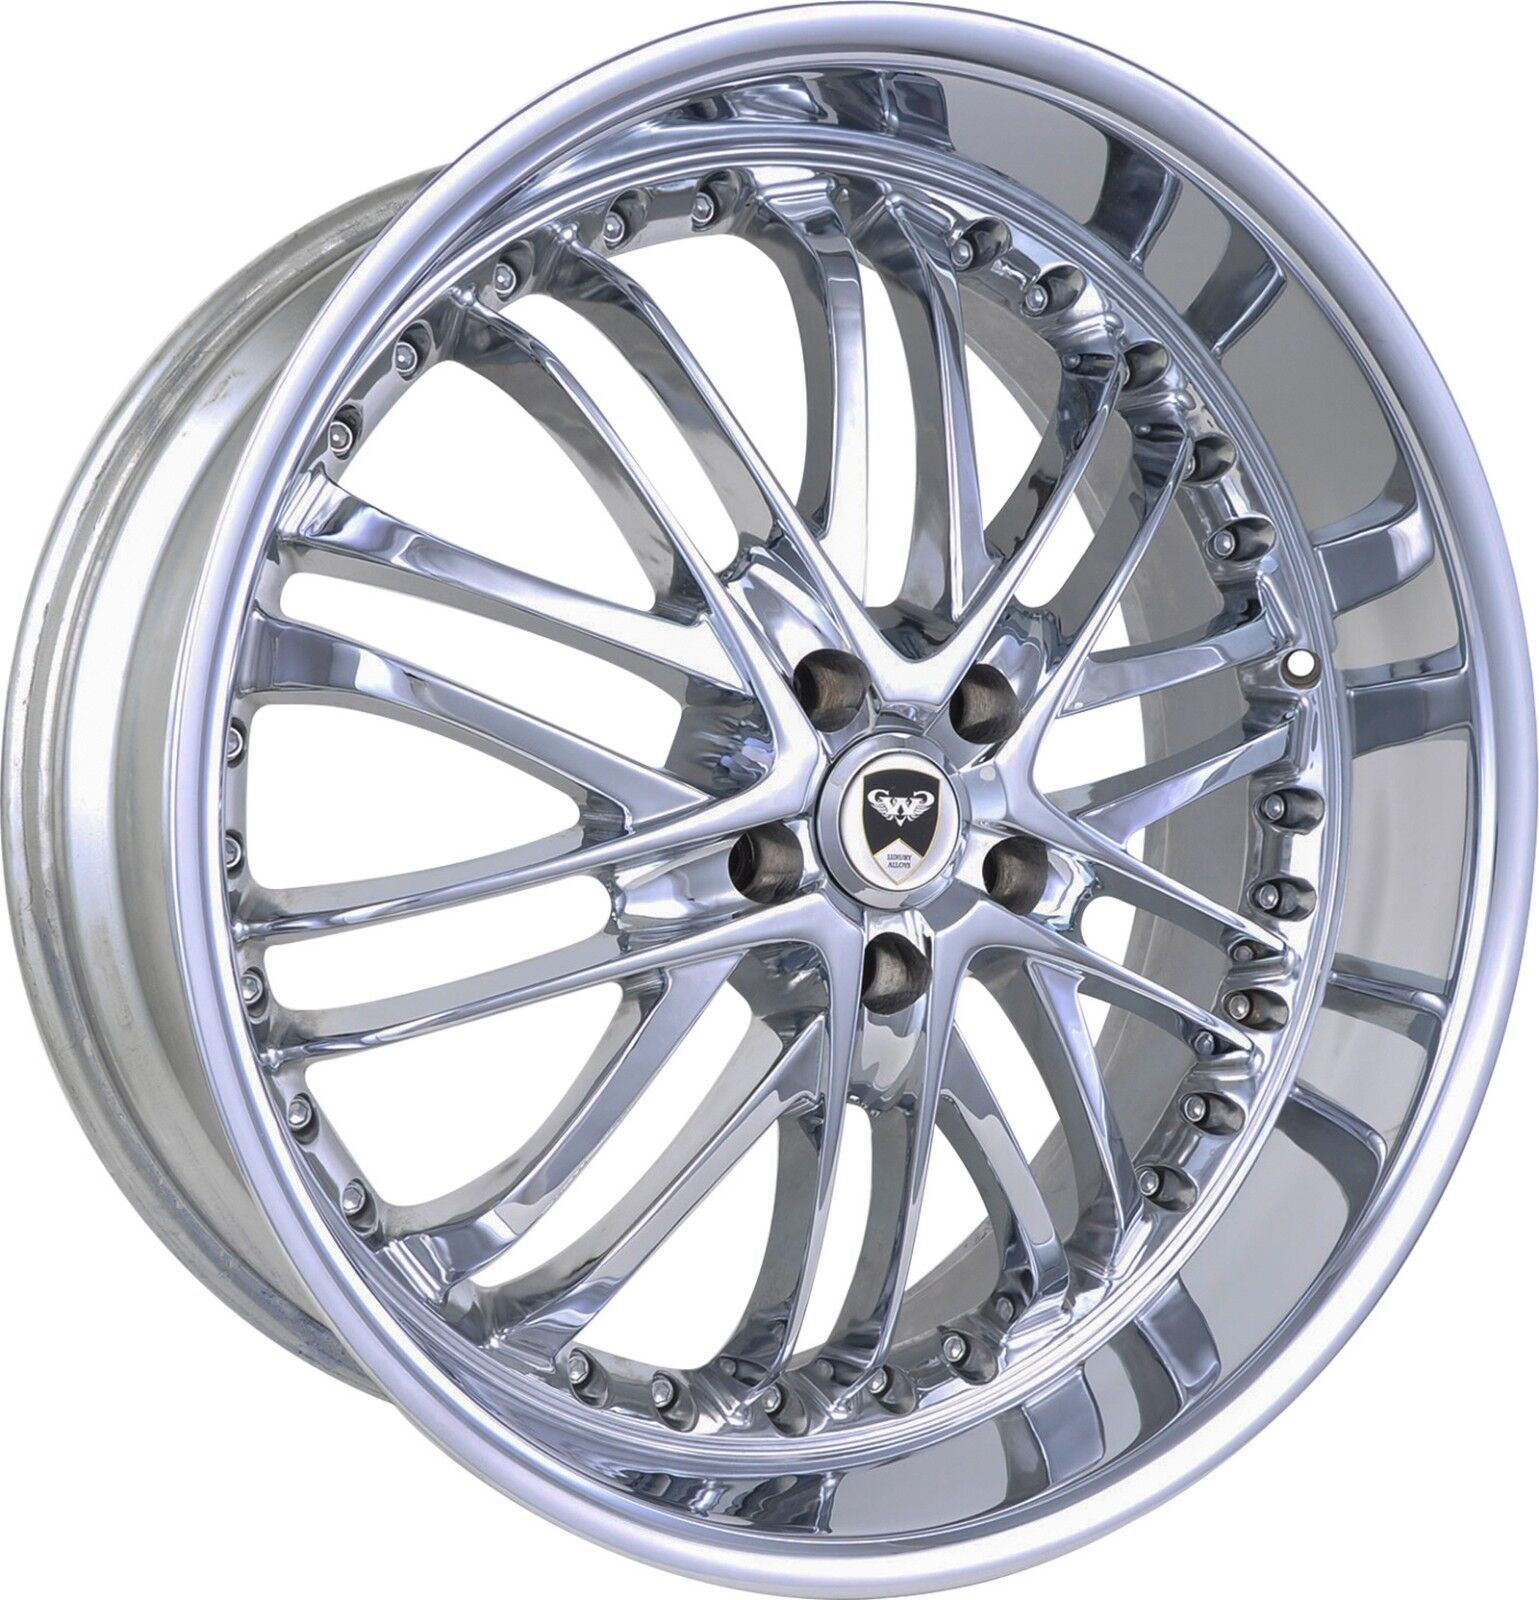 4 GWG Wheels 20 inch STAGGERED Chrome AMAYA Rims fits MASERATI COUPE 4200 2002